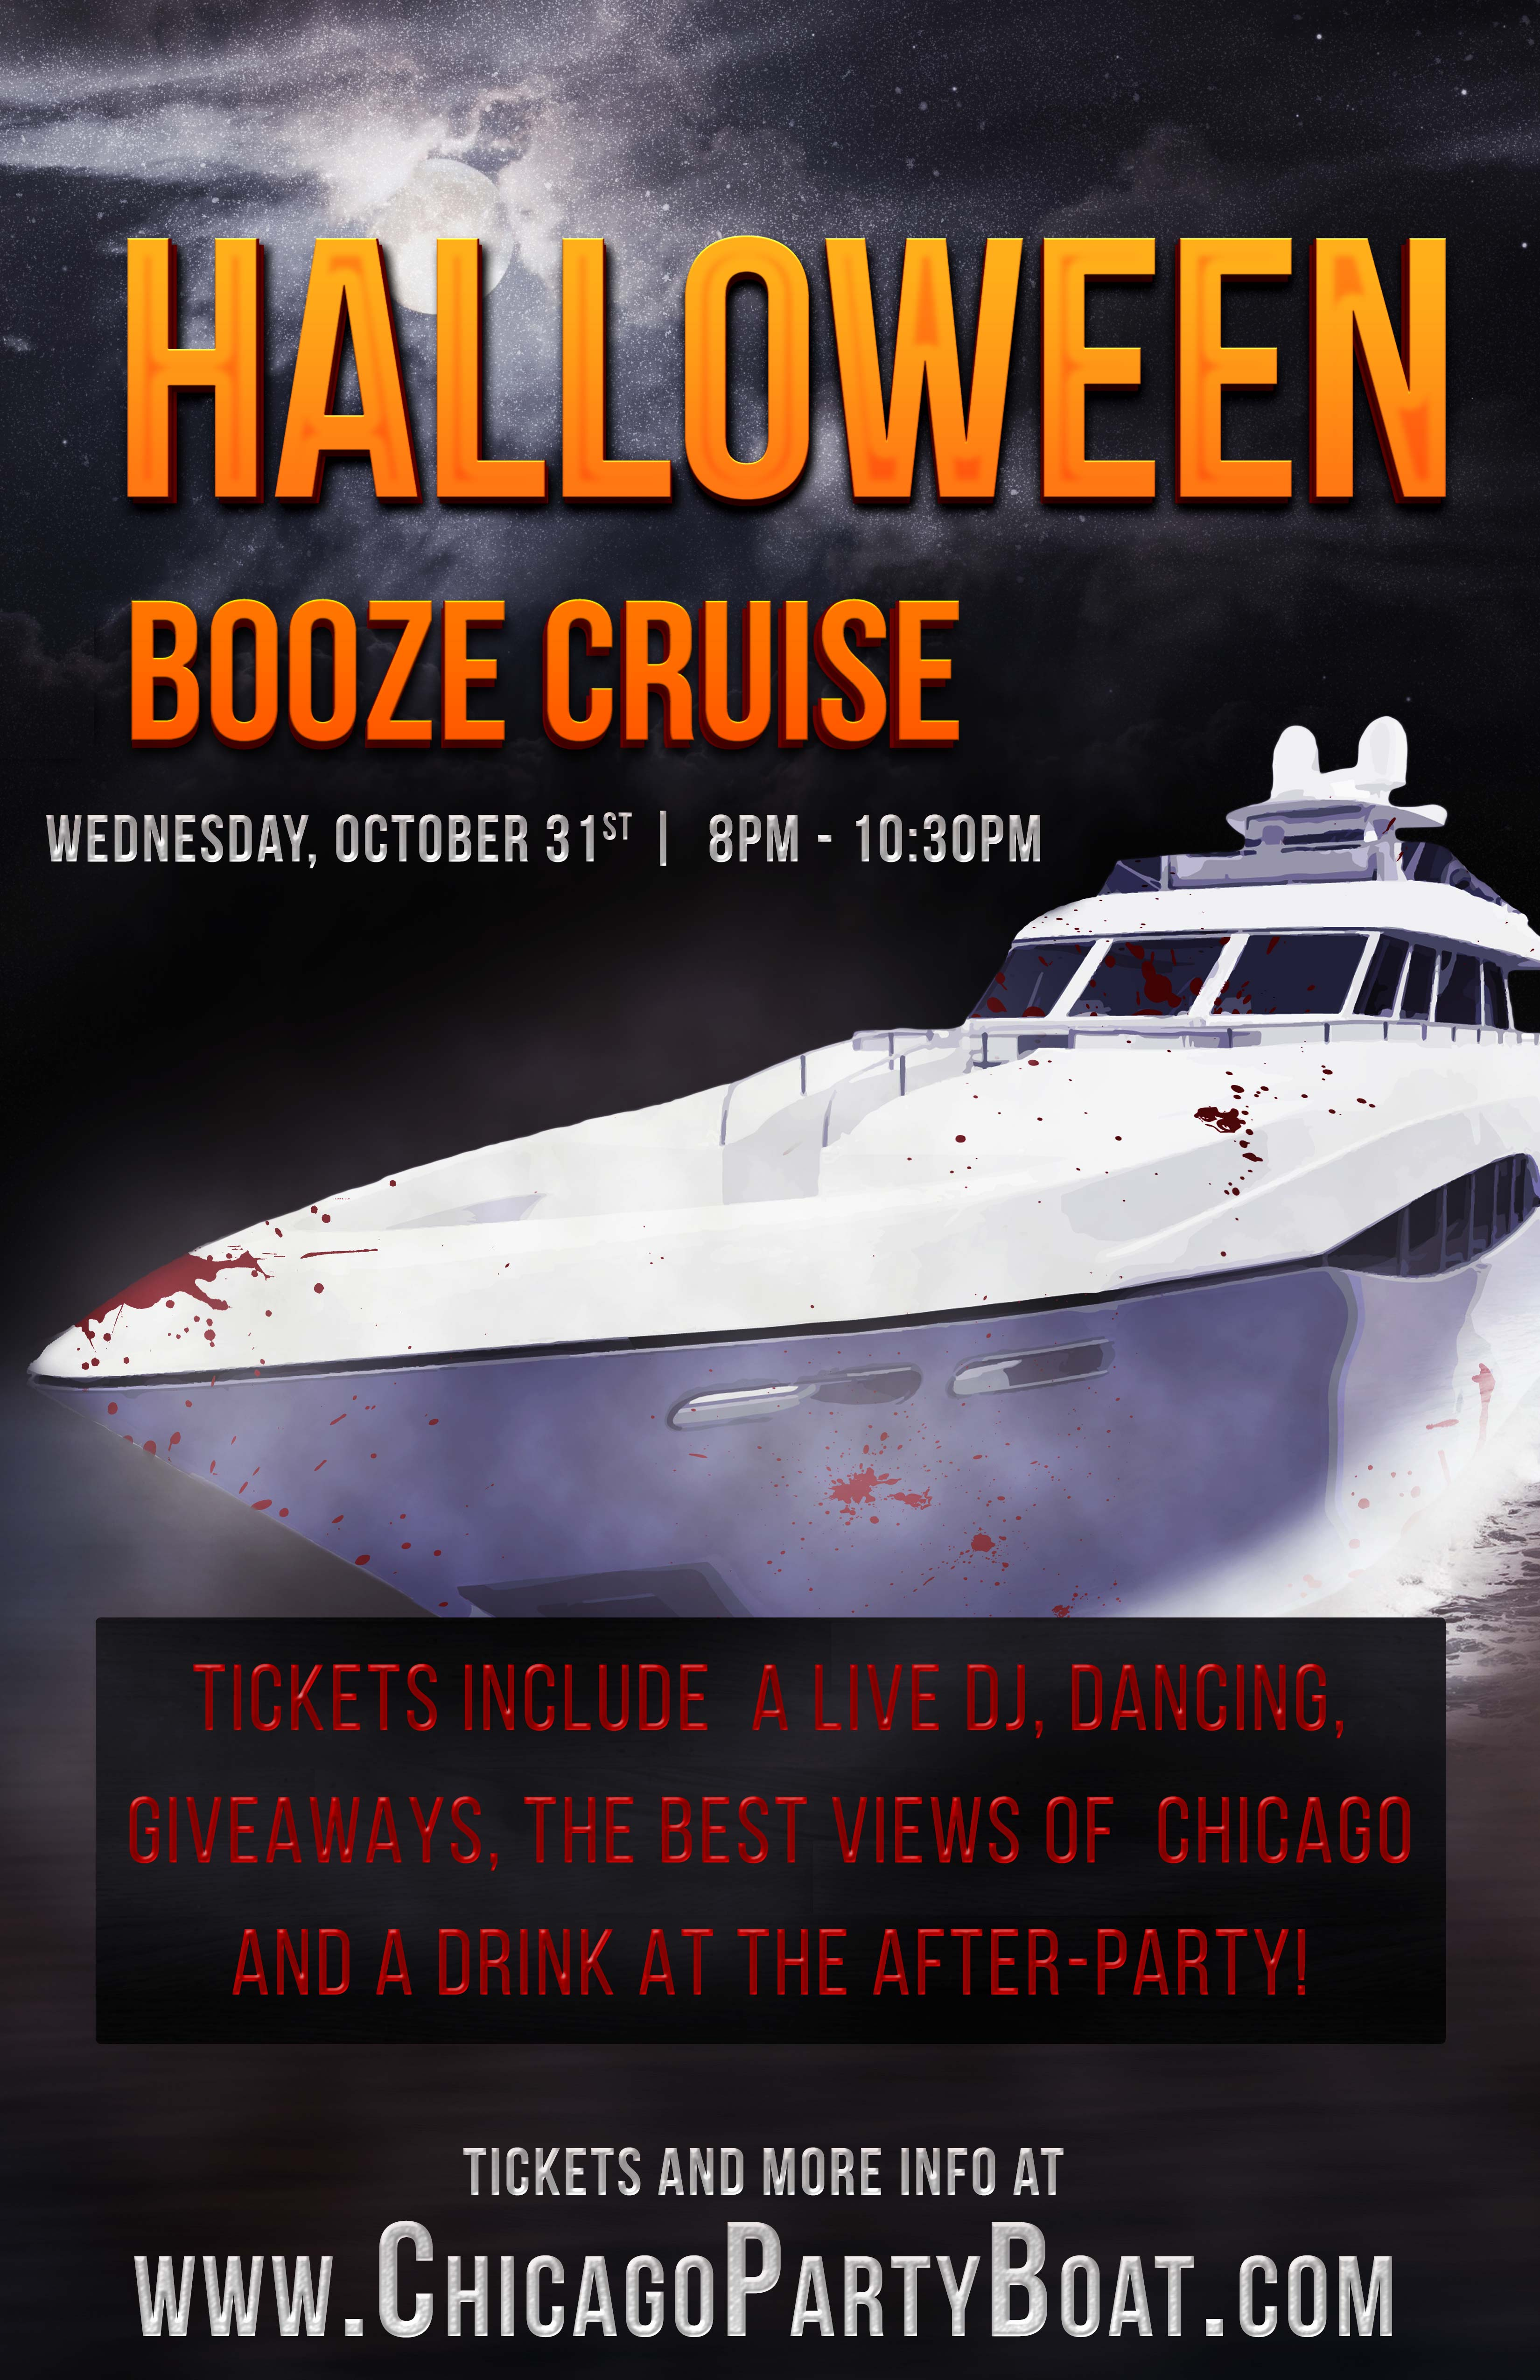 Halloween Booze Cruise Party - Tickets include a Live DJ, Dancing, Giveaways, the best views of Chicago and a drink at the After-Party!